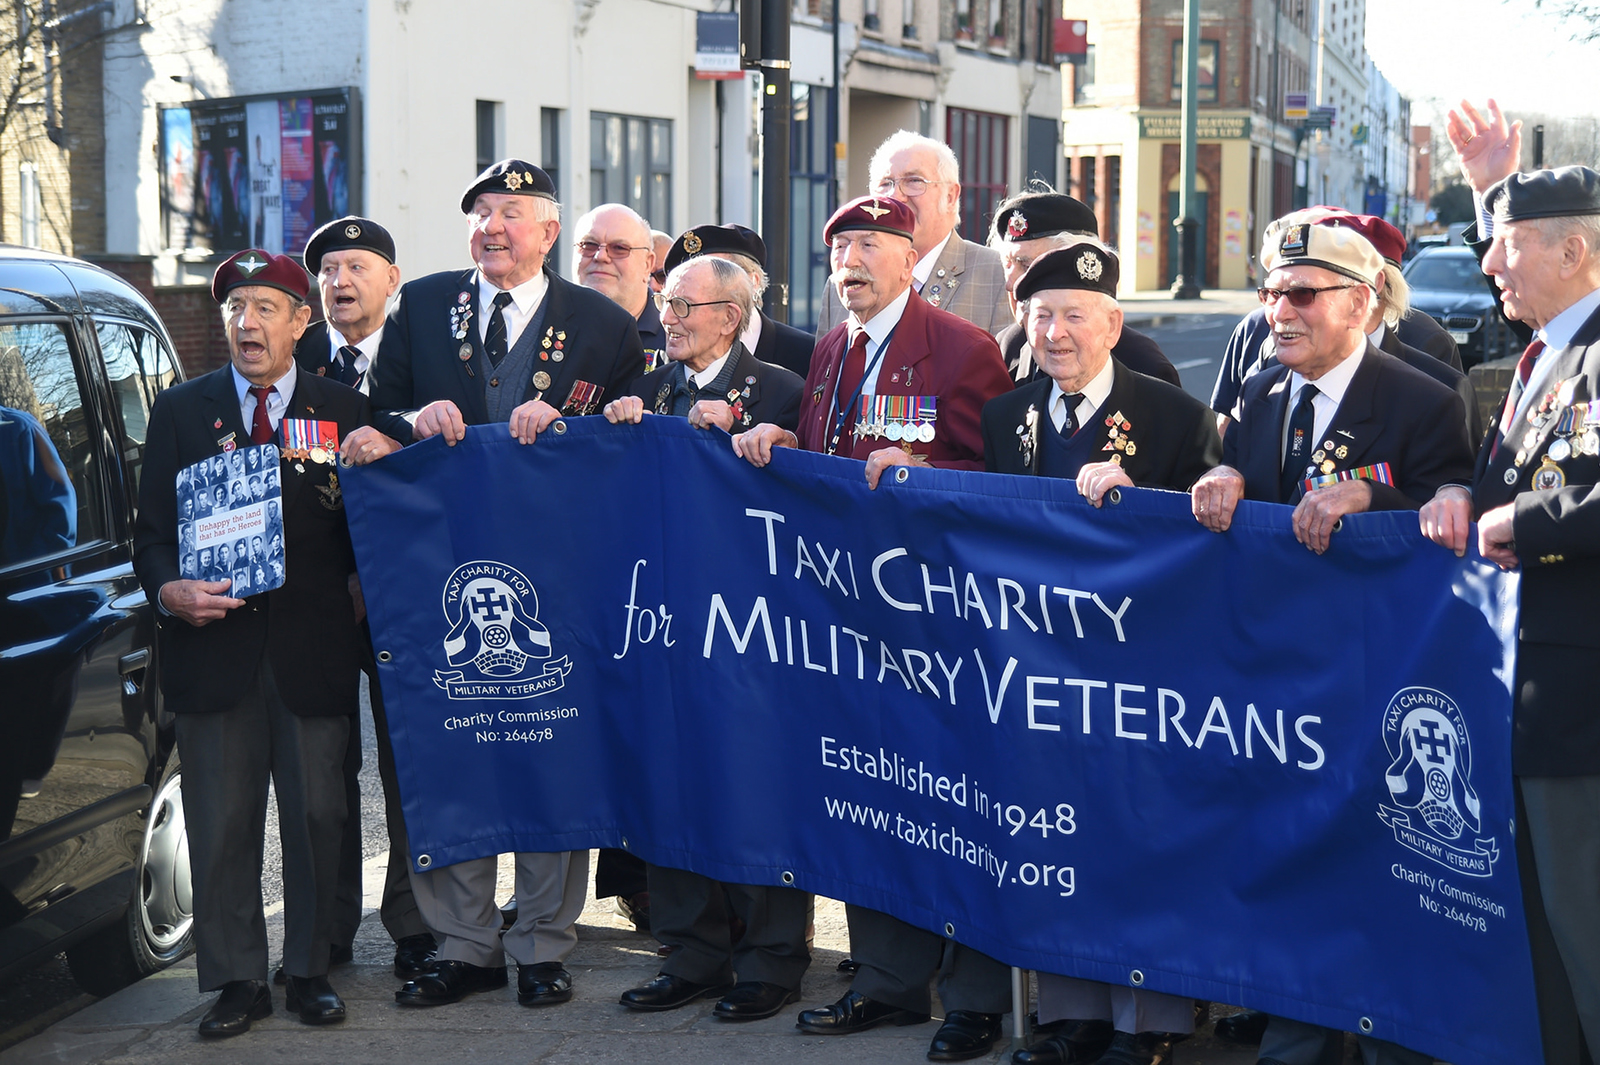 taxi charity military veterans 2018